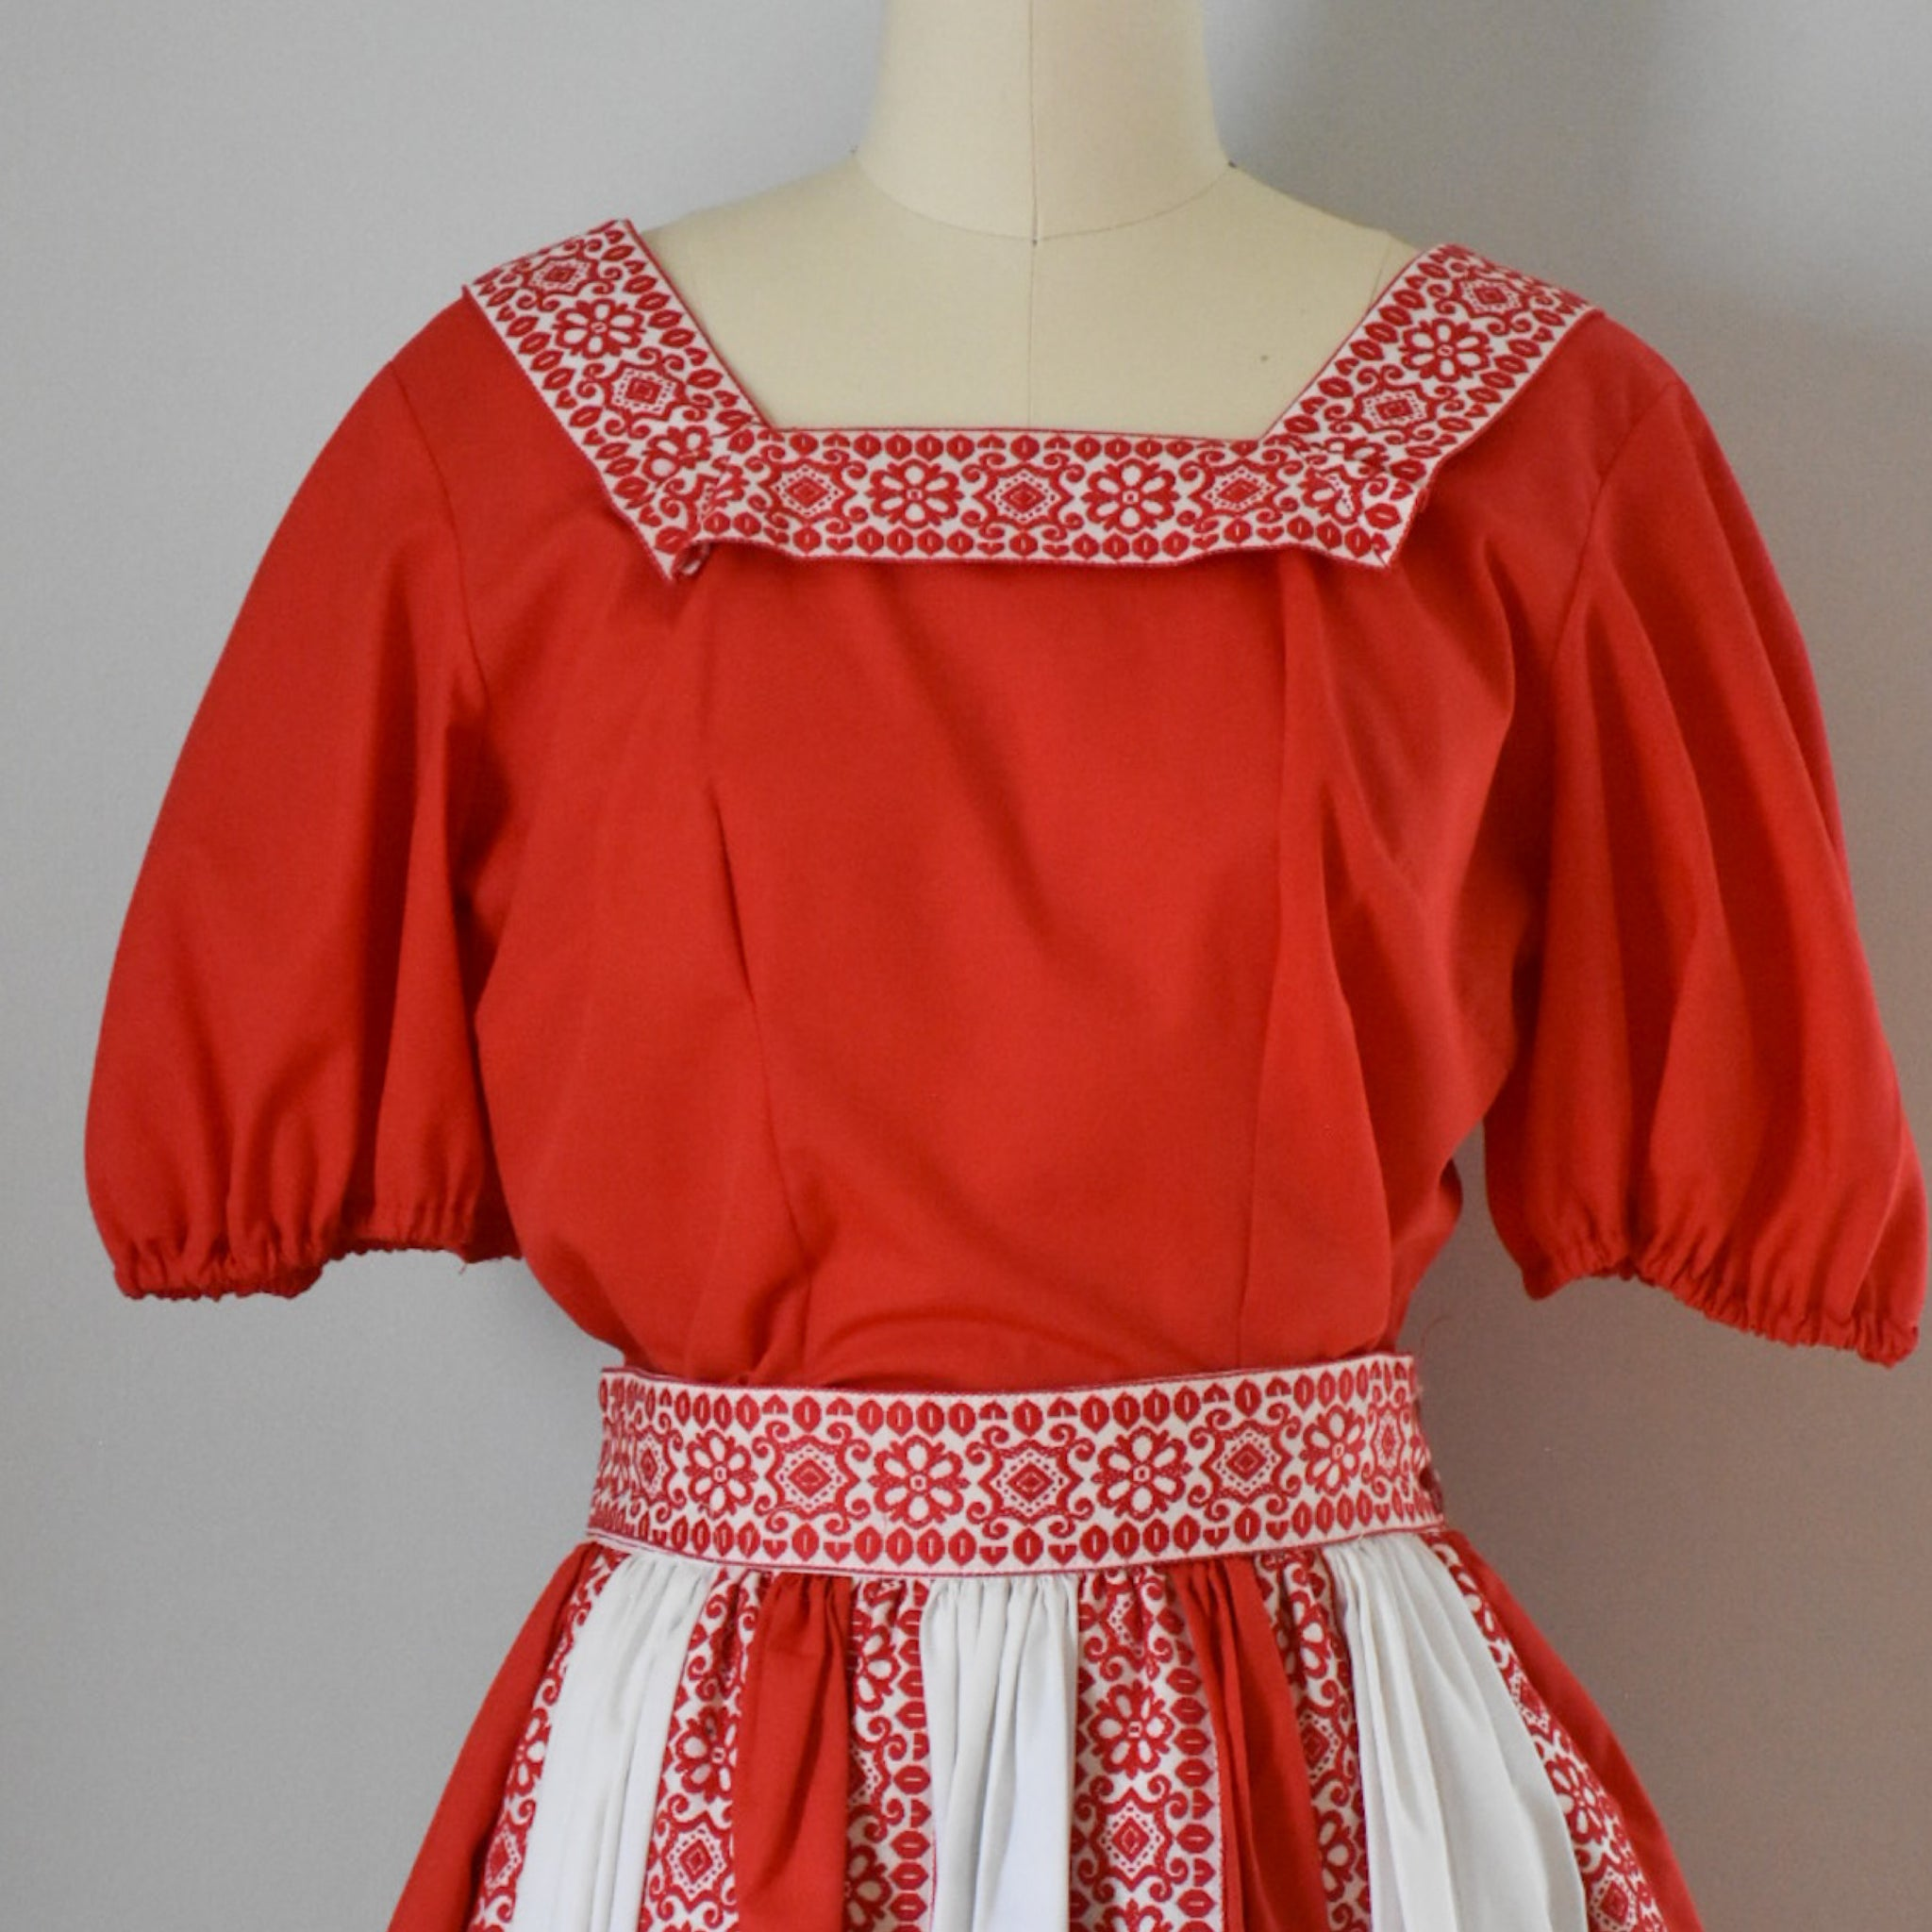 50s Vintage Patio Dress / Skirt and Two Tops